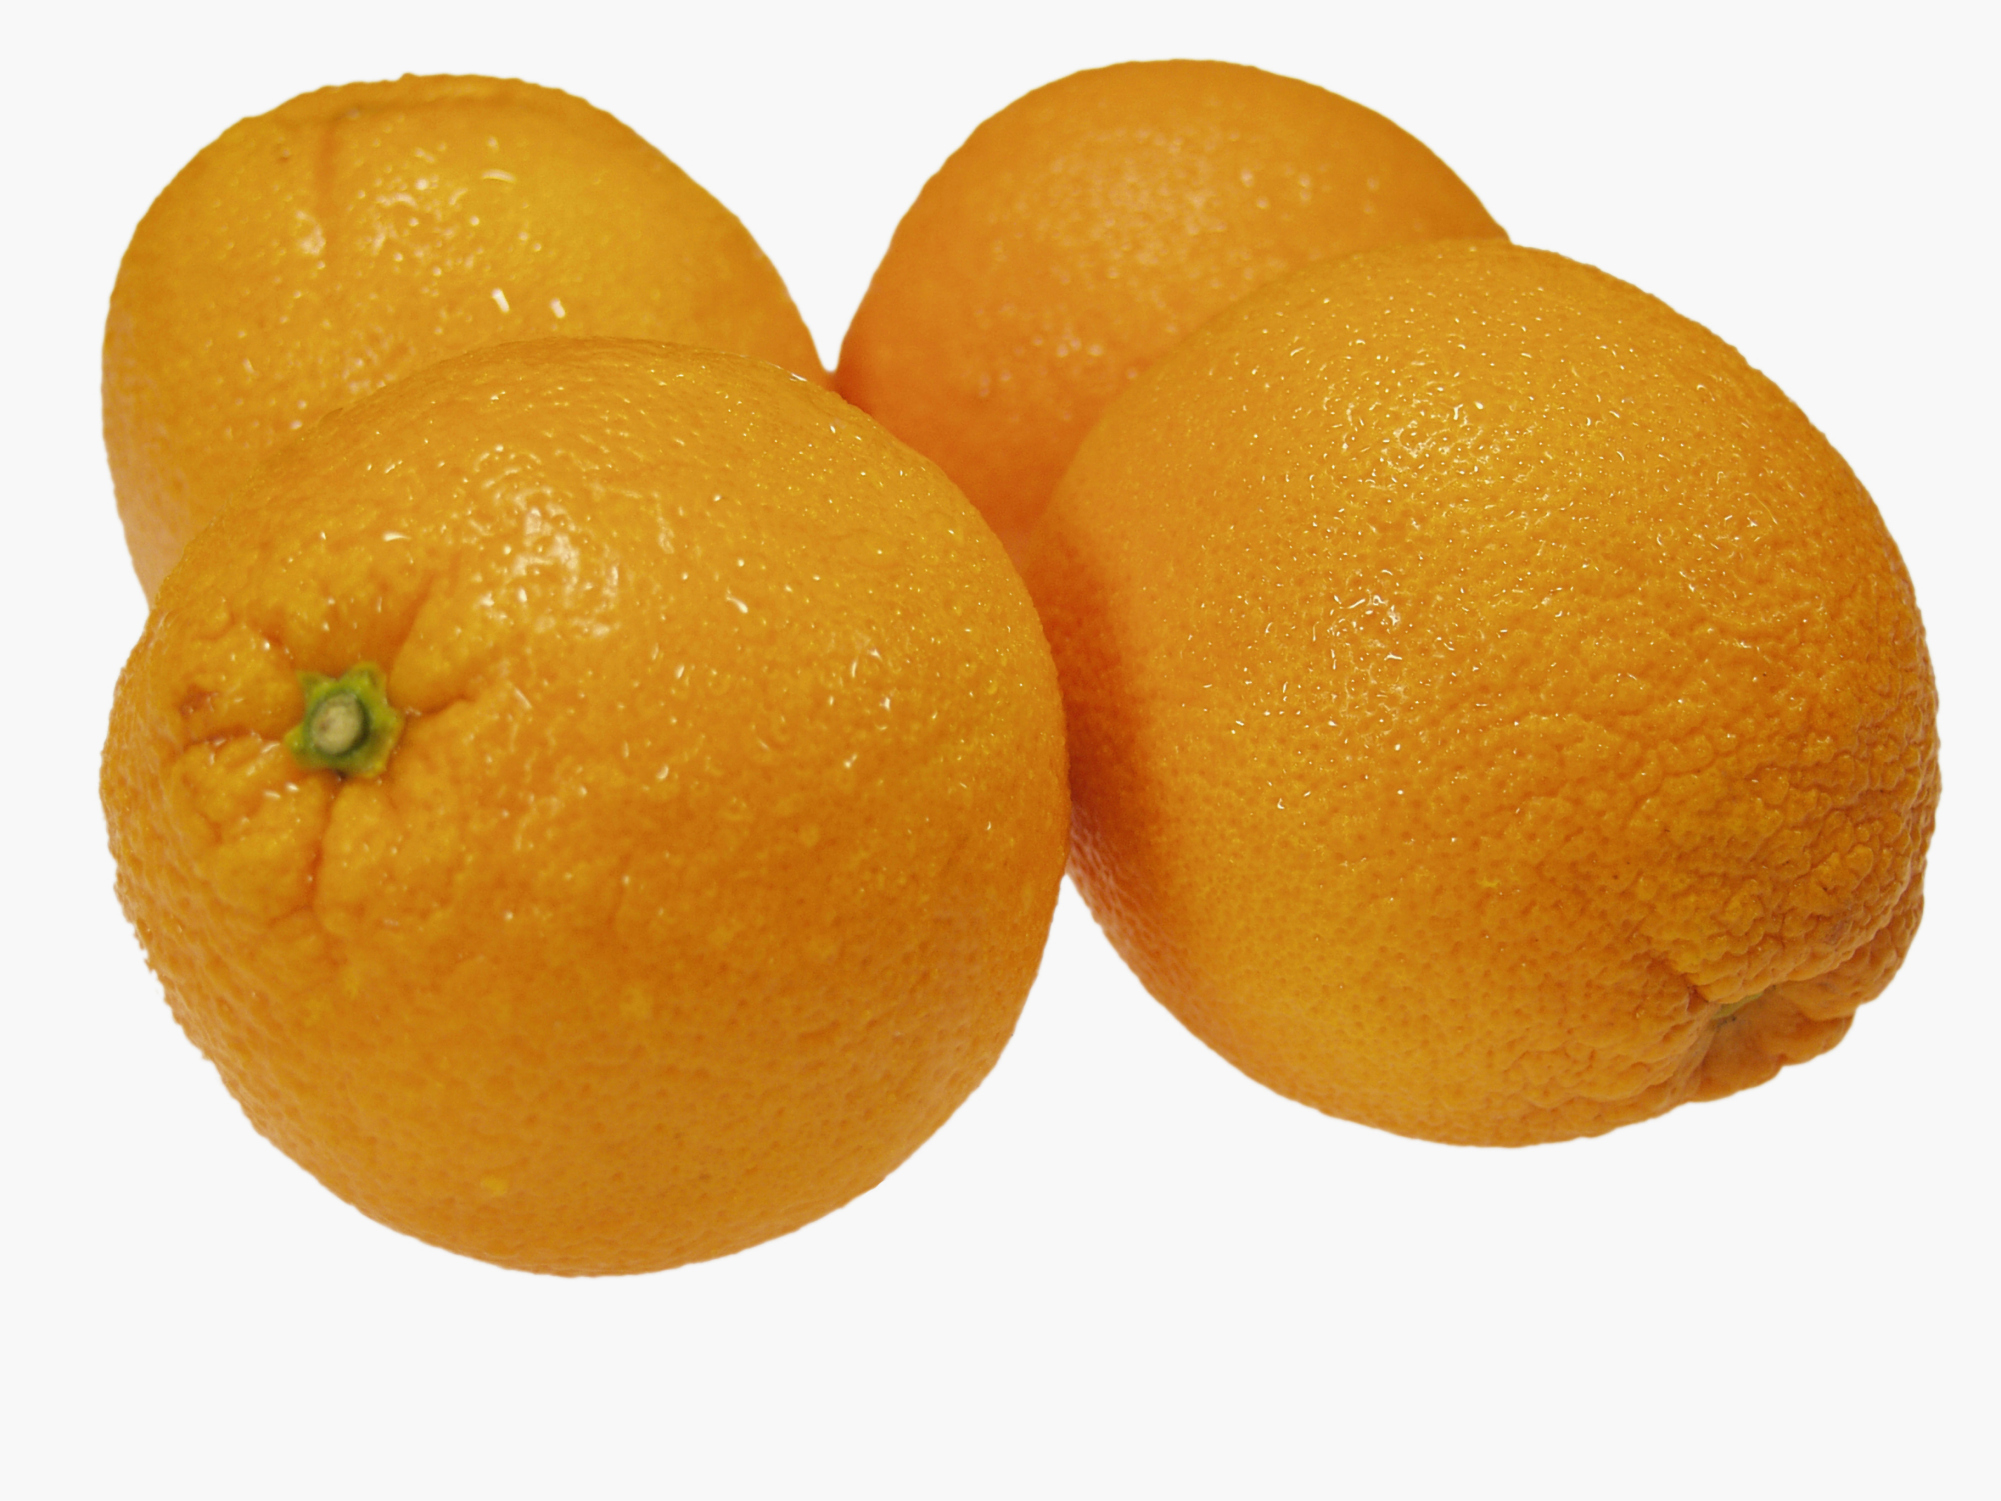 Oranges are loaded with vitamin C, an antioxidant.